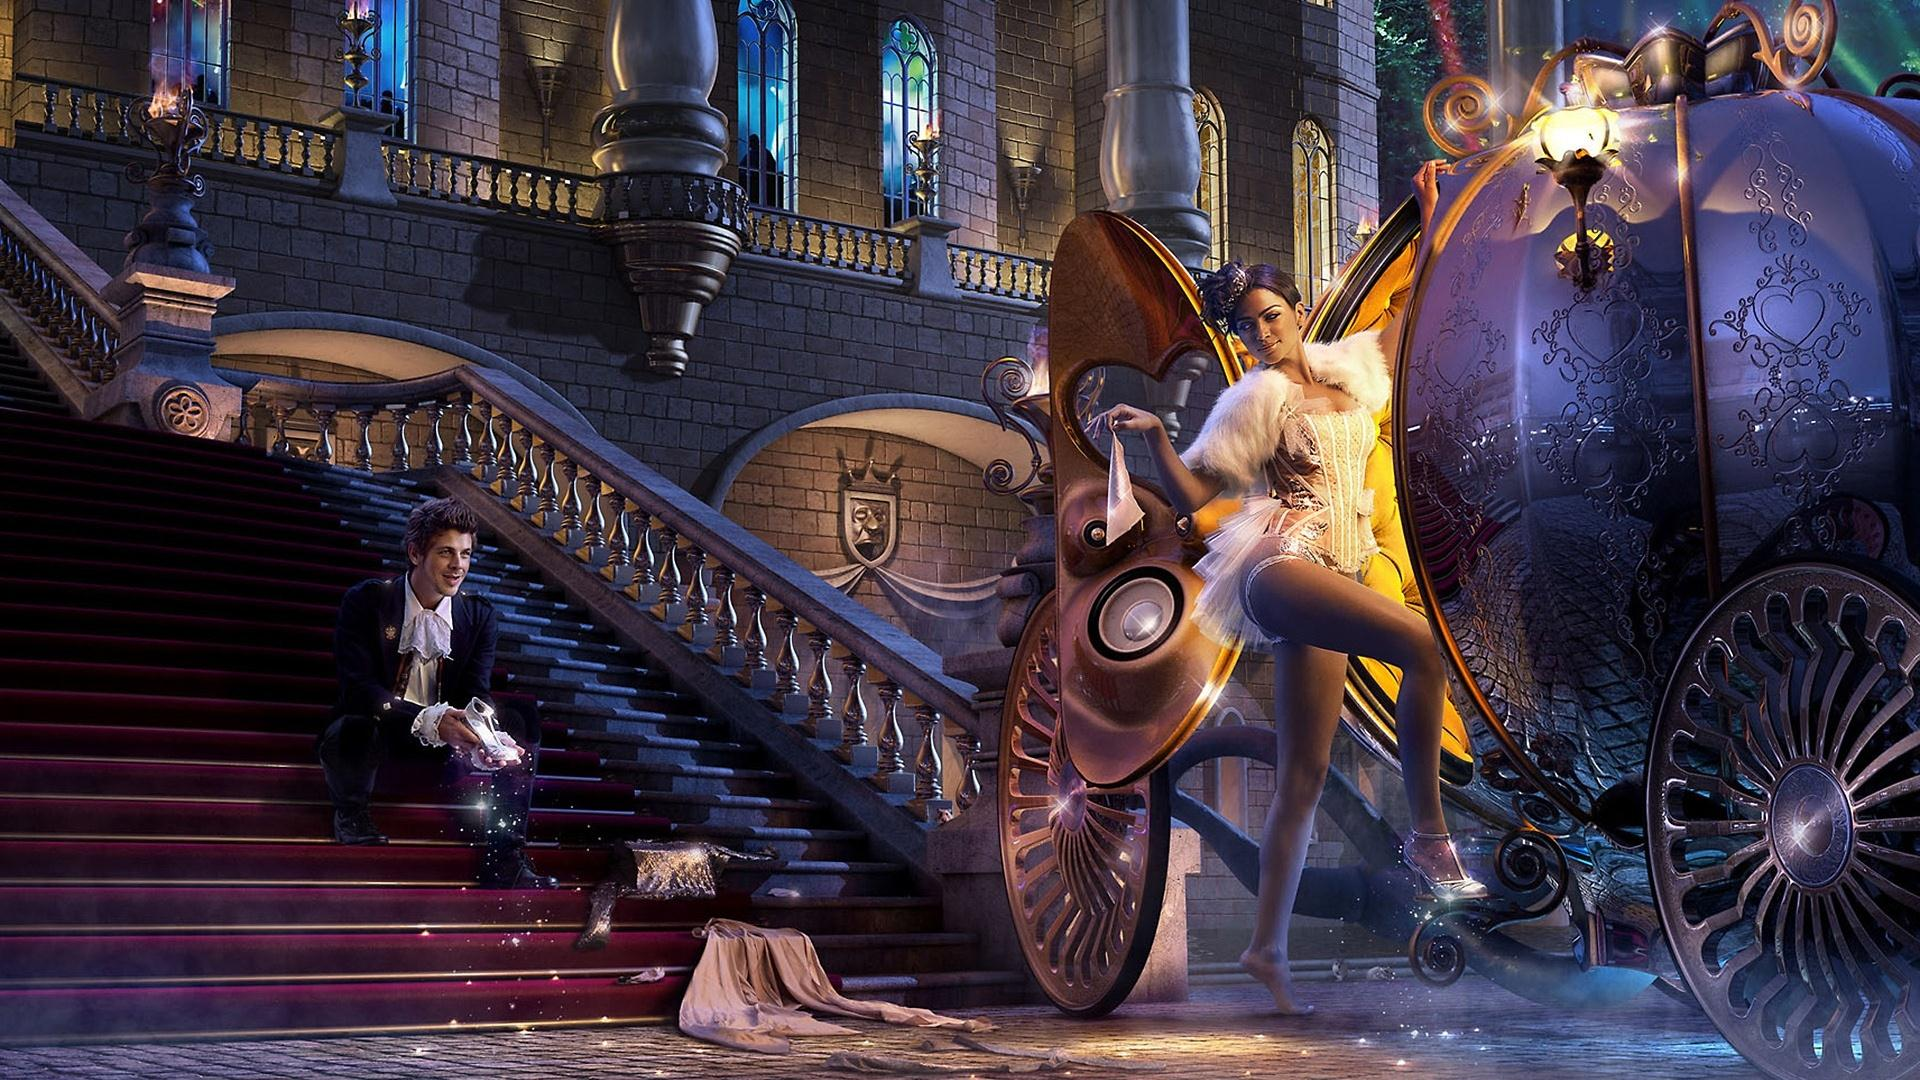 wallpaper hd cendrillon